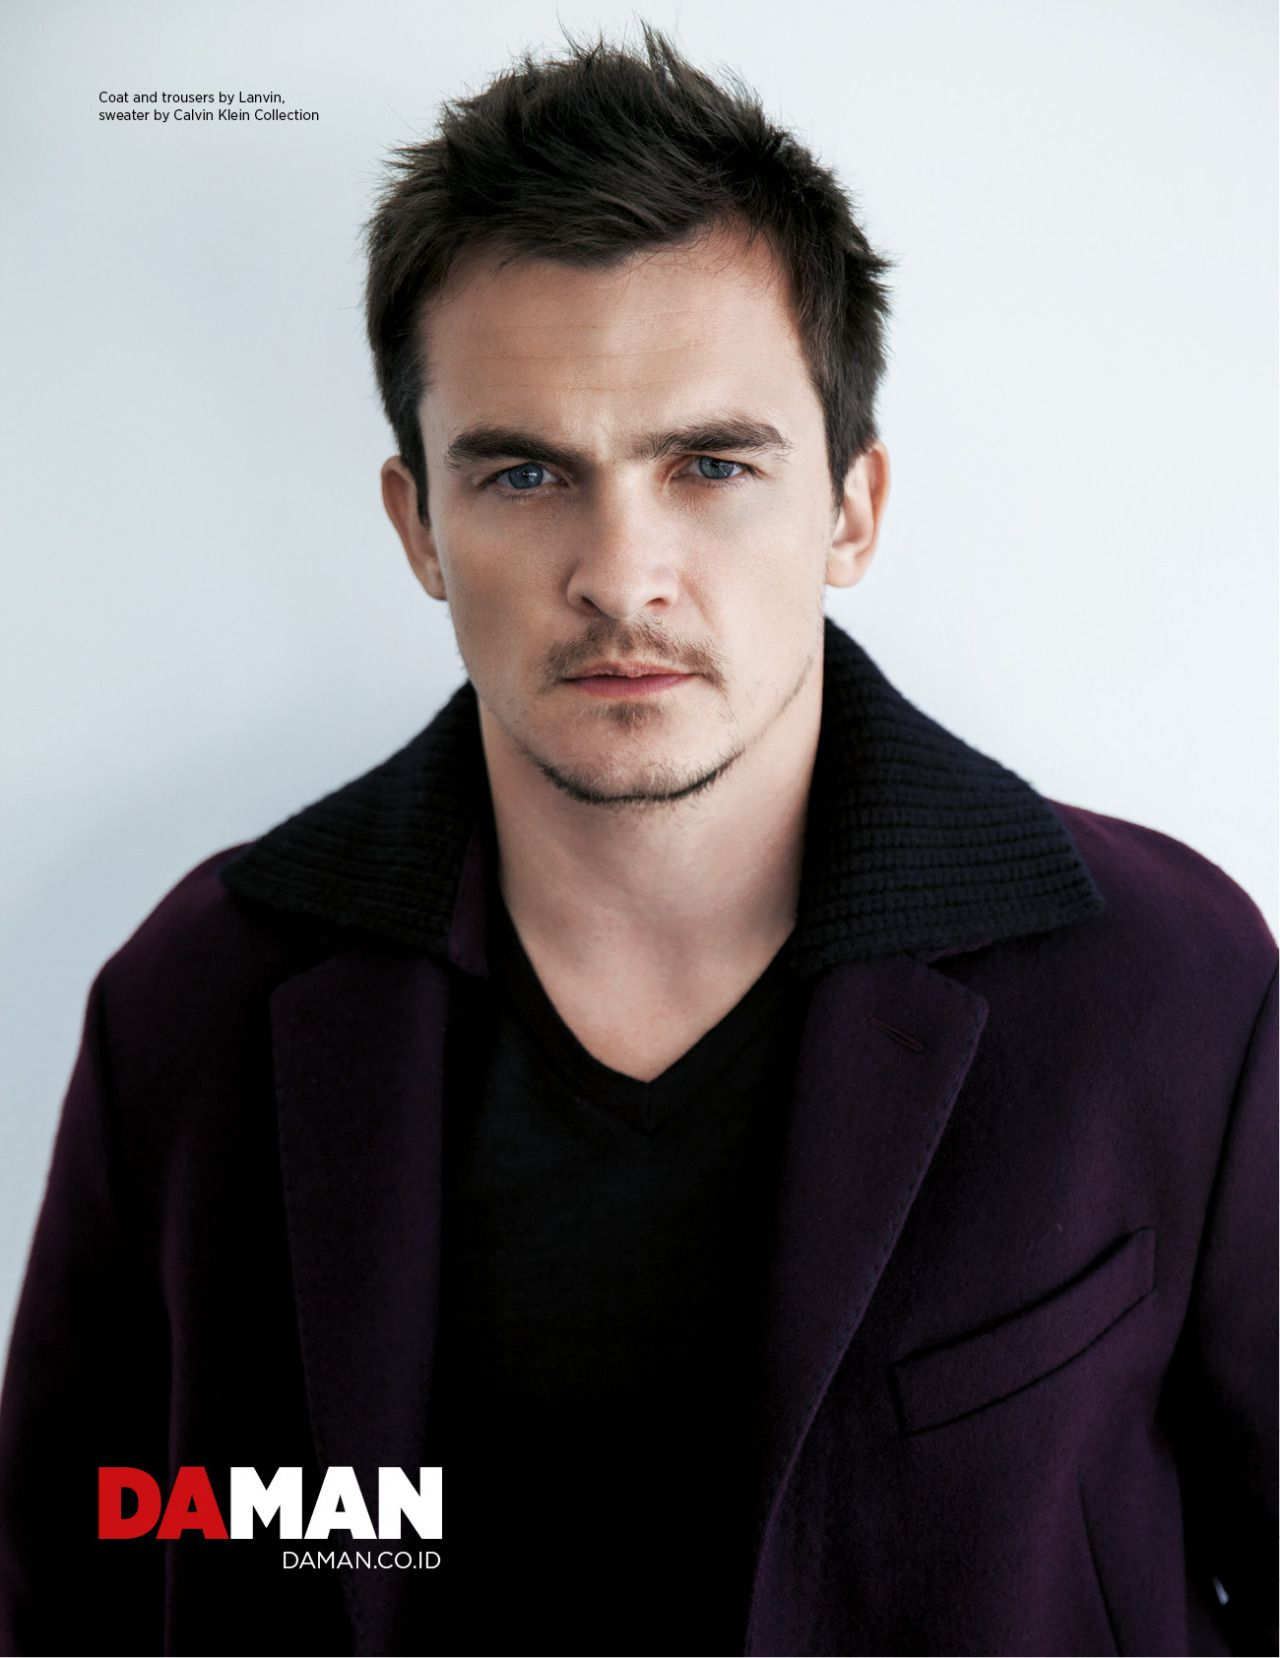 Sideboobs Erotica Rupert Friend (born 1981)  nudes (32 photos), Facebook, see through